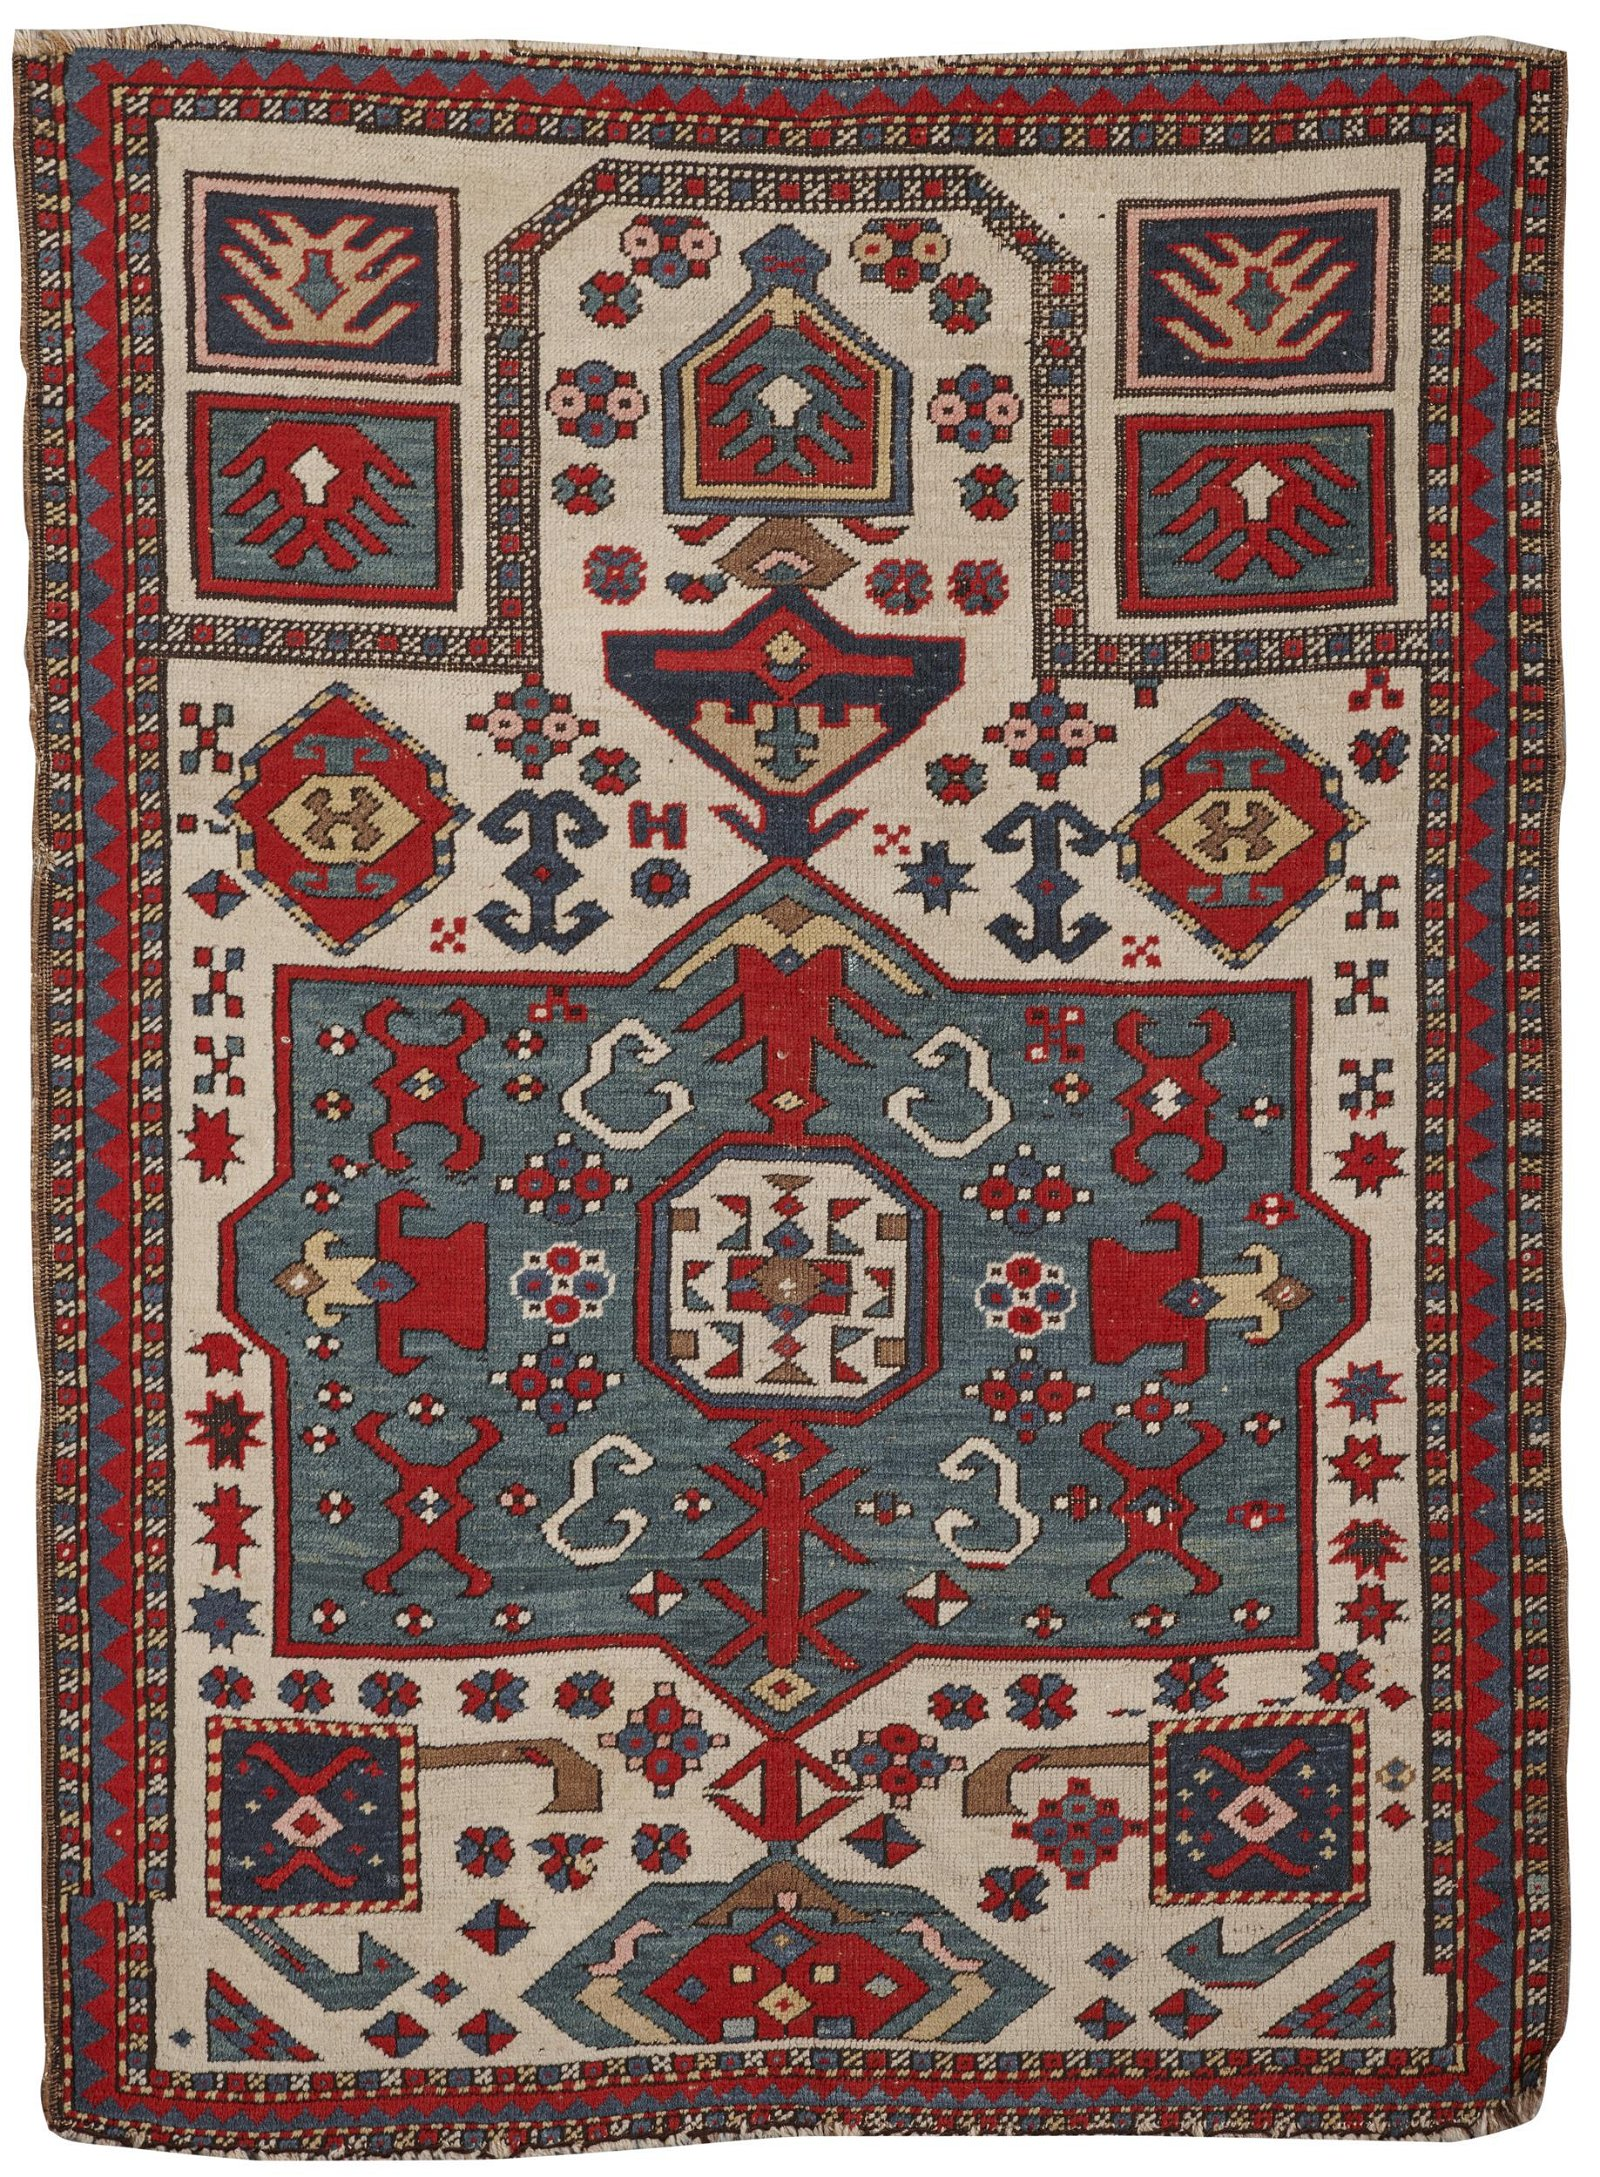 Caucasian Prayer Rug, ca. 1900; 4 ft. 10 in. x 3 ft. 7